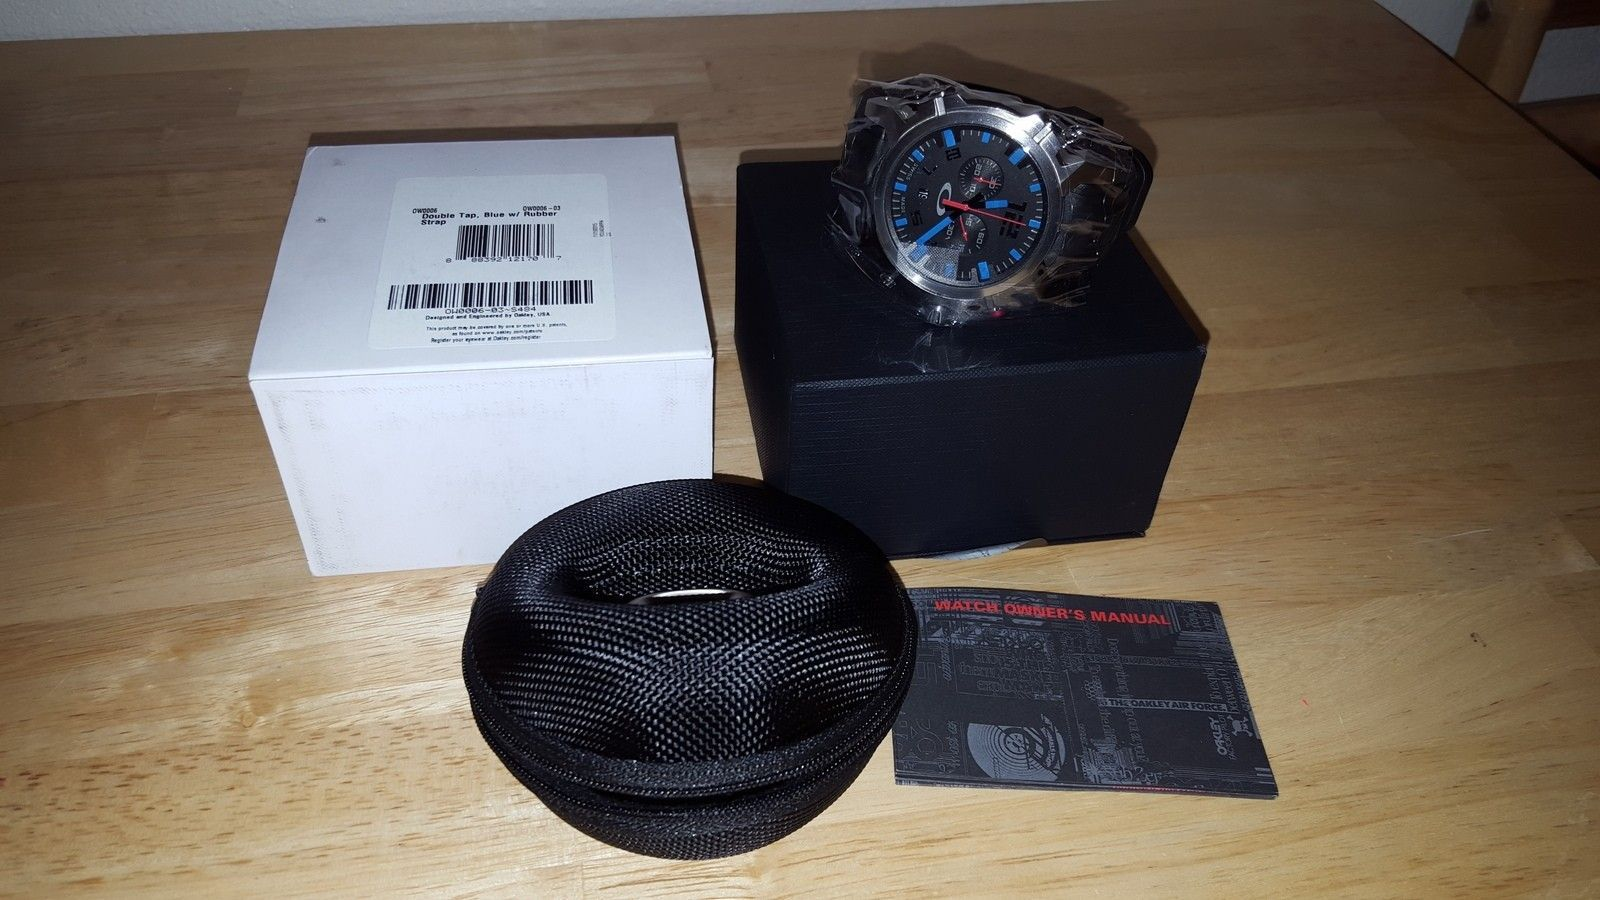 LNIB Stealth Double Tap $475 and BNIB Blue Dial Double Tap $500 - 20151221_222145.jpg